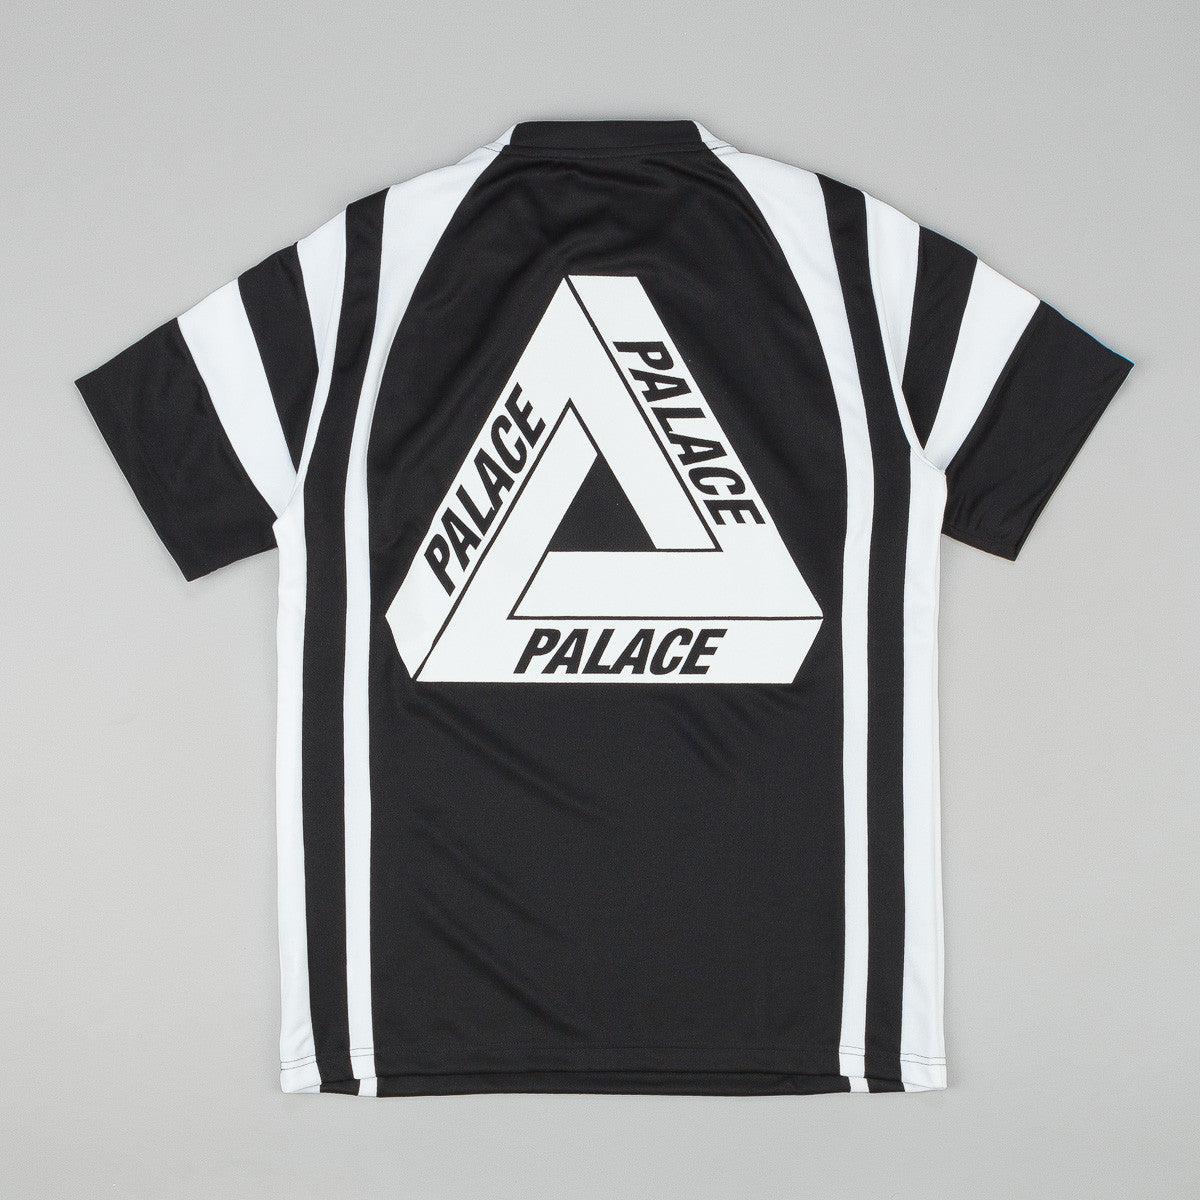 Adidas x Palace T-Shirt Black / White